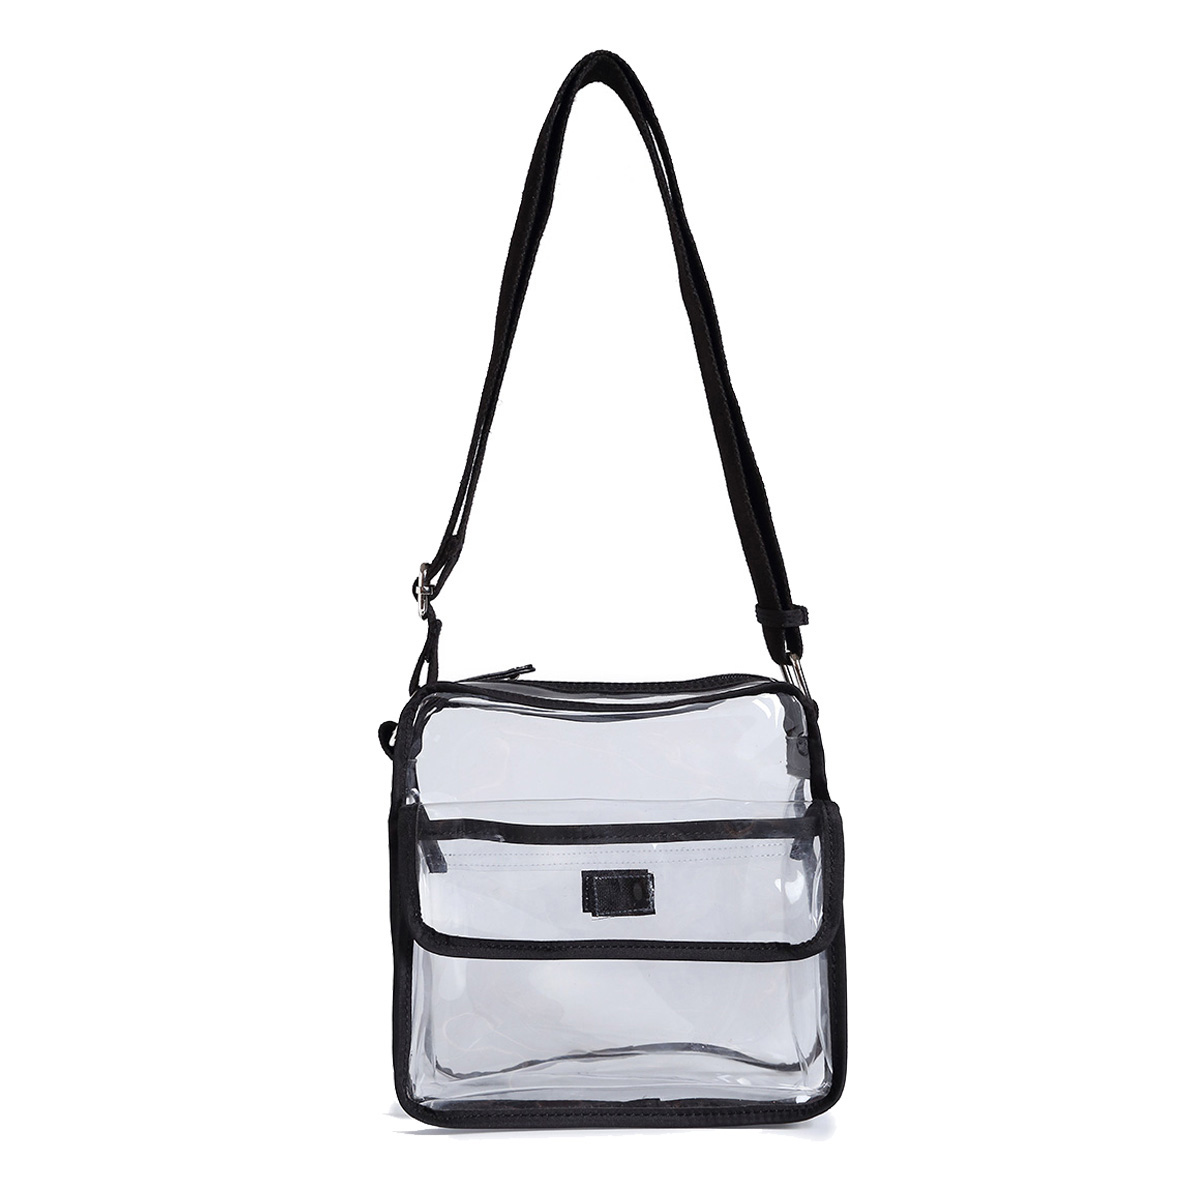 TM6-1080 Premium Clear Jelly Purse